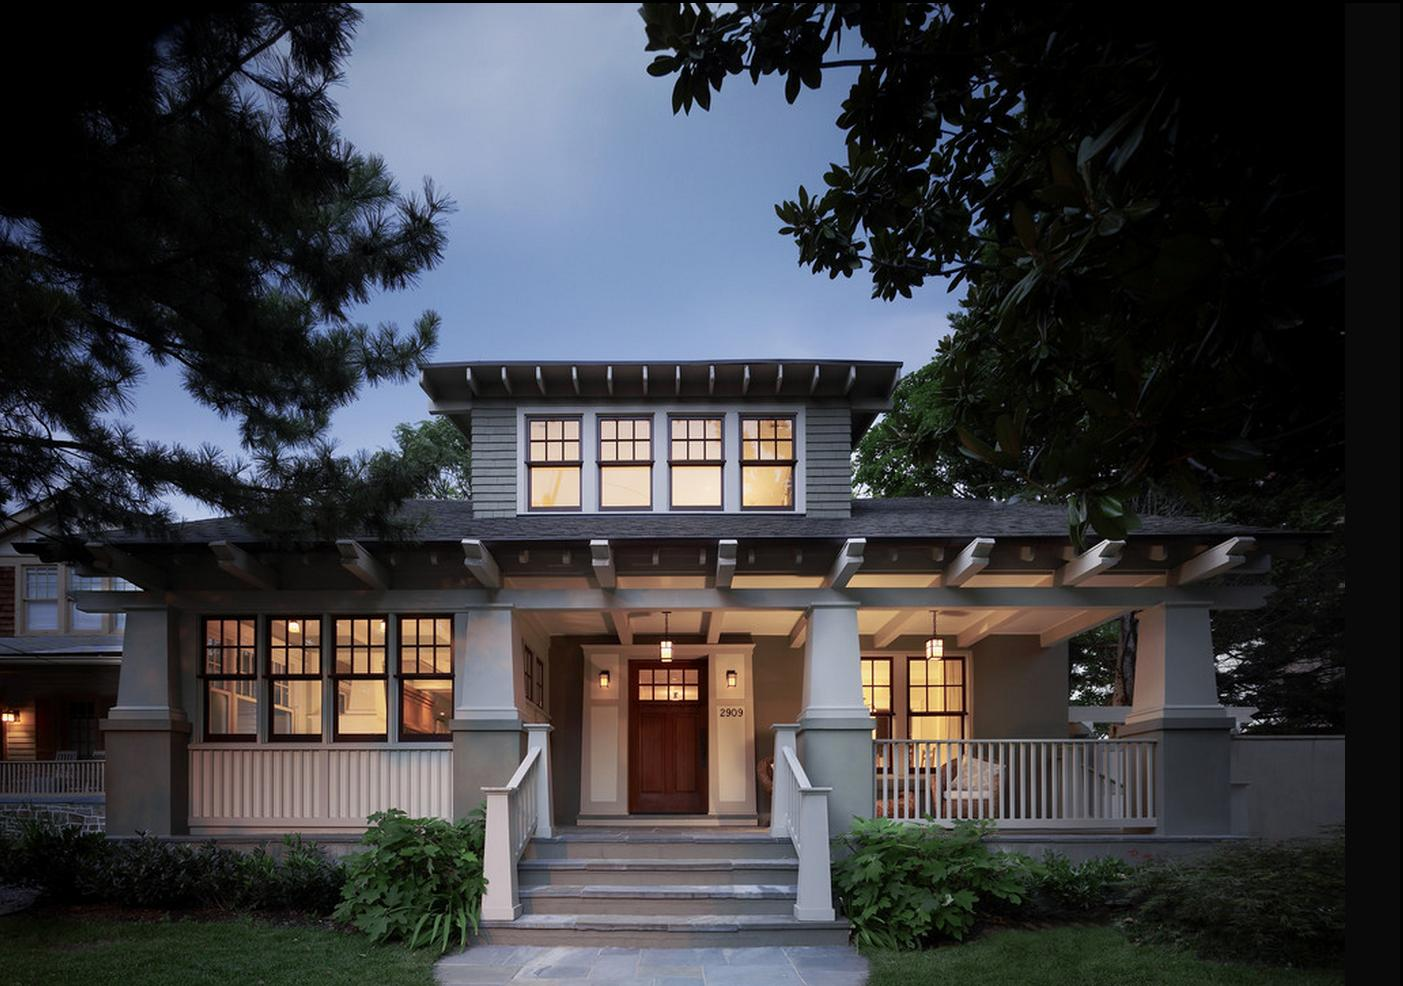 Delorme designs craftsman style home wythe blue hc 143 - What is a craftsman style house ...